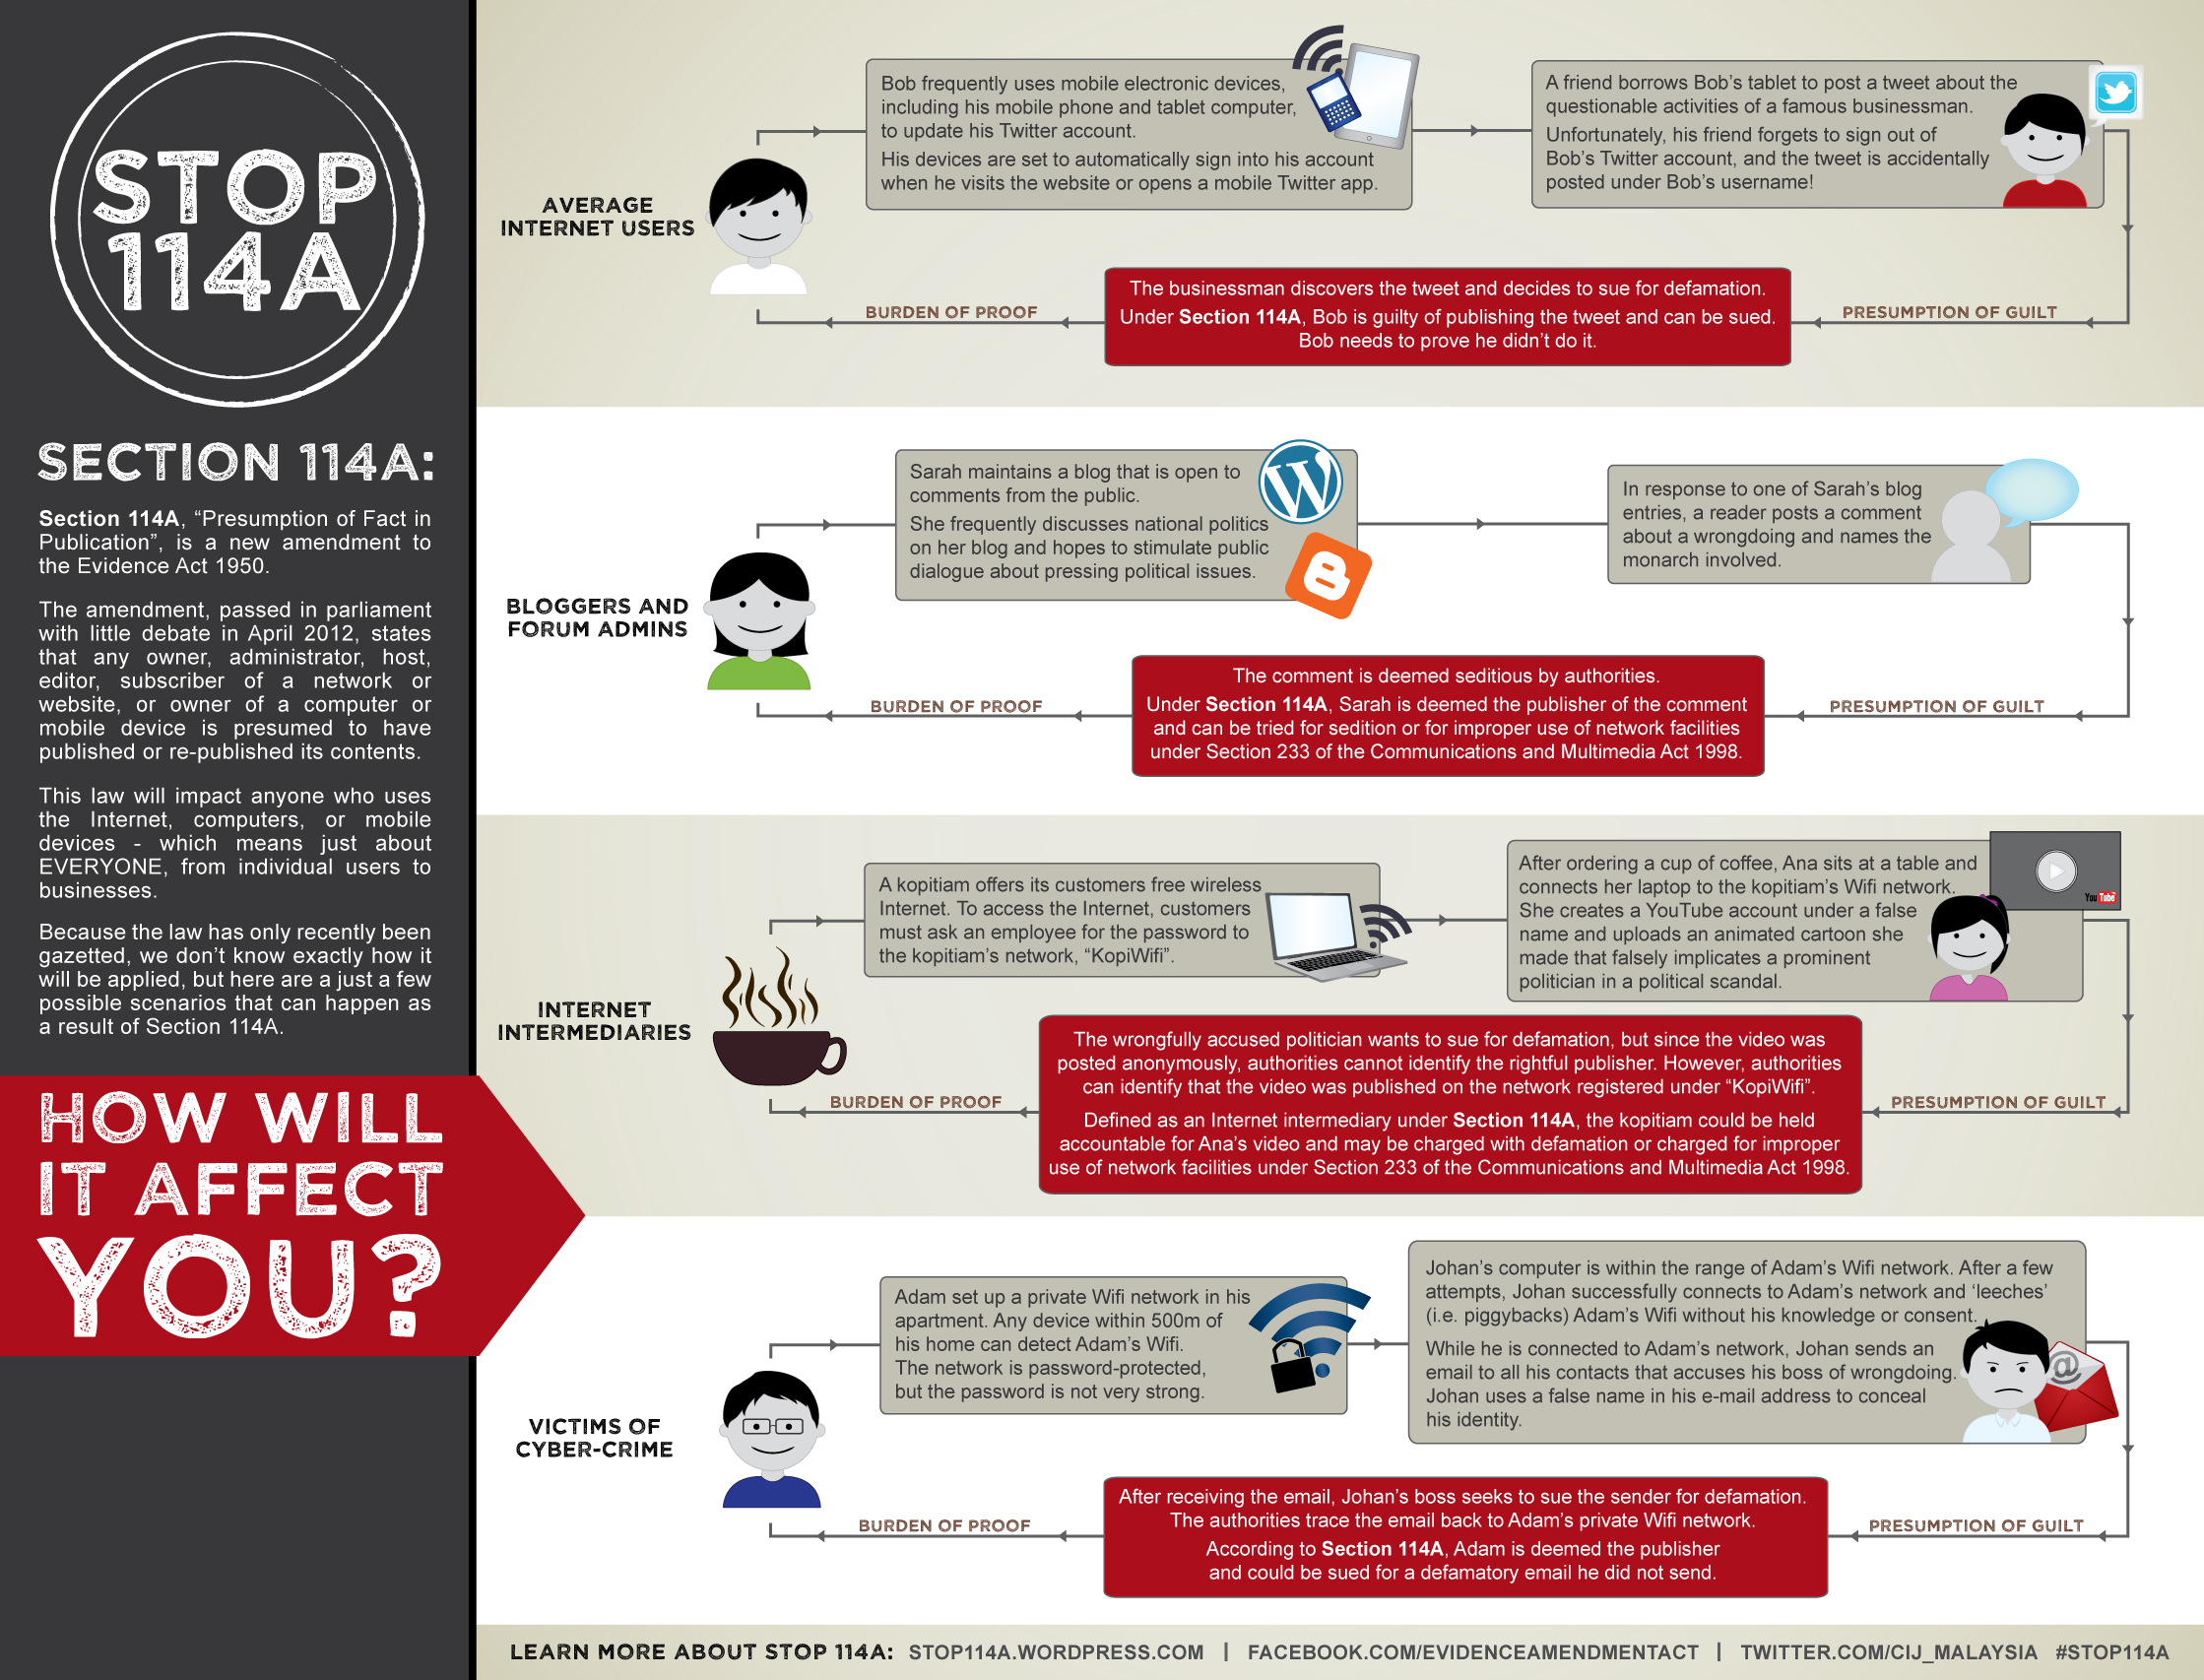 Centre for Independent Journalism's infographic on 114A